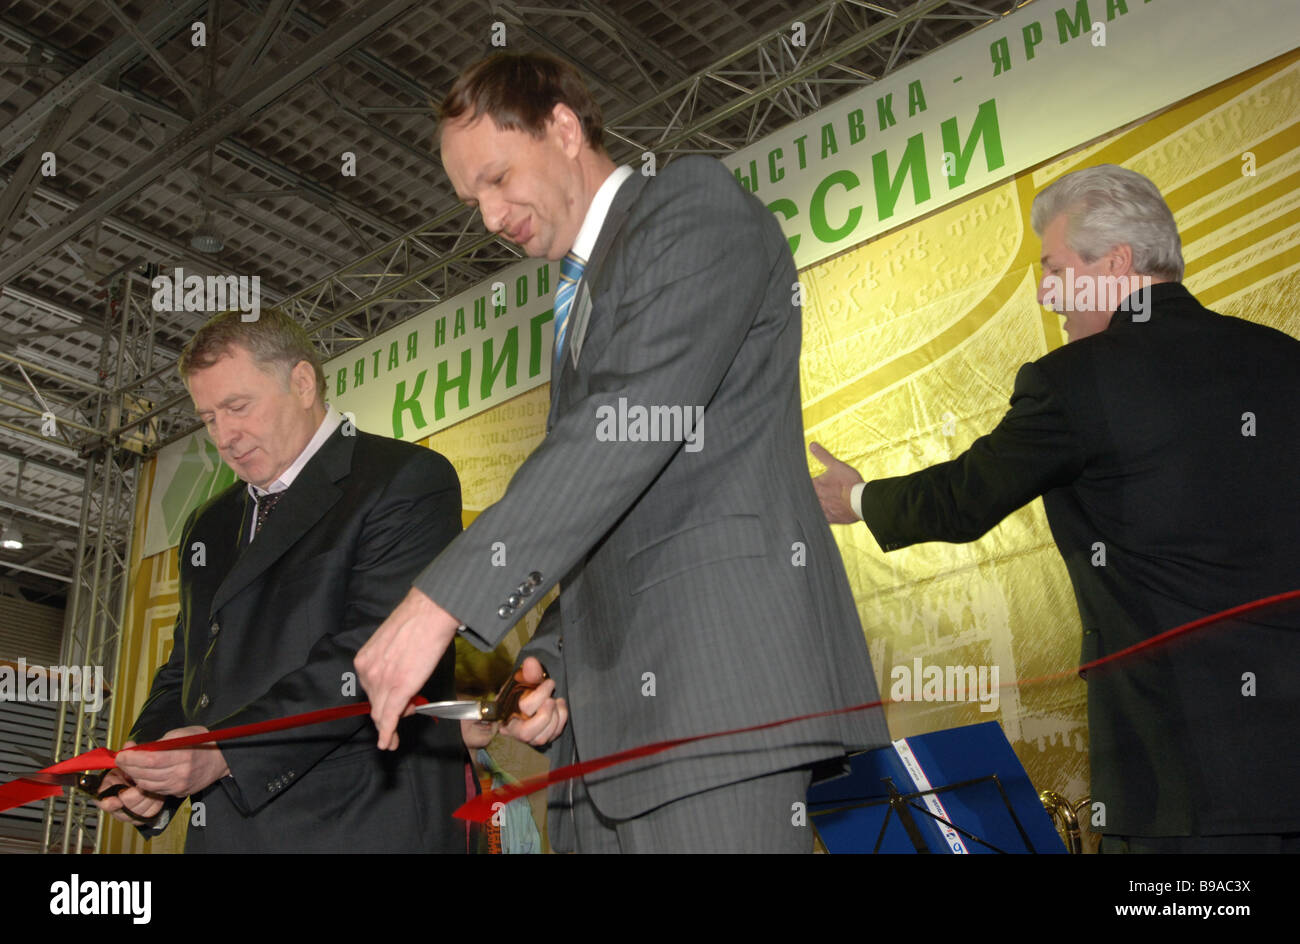 A 9th Books of Russia national exposition and trade fair opened in a gala at Moscow s All Russia Exposition Center - Stock Image